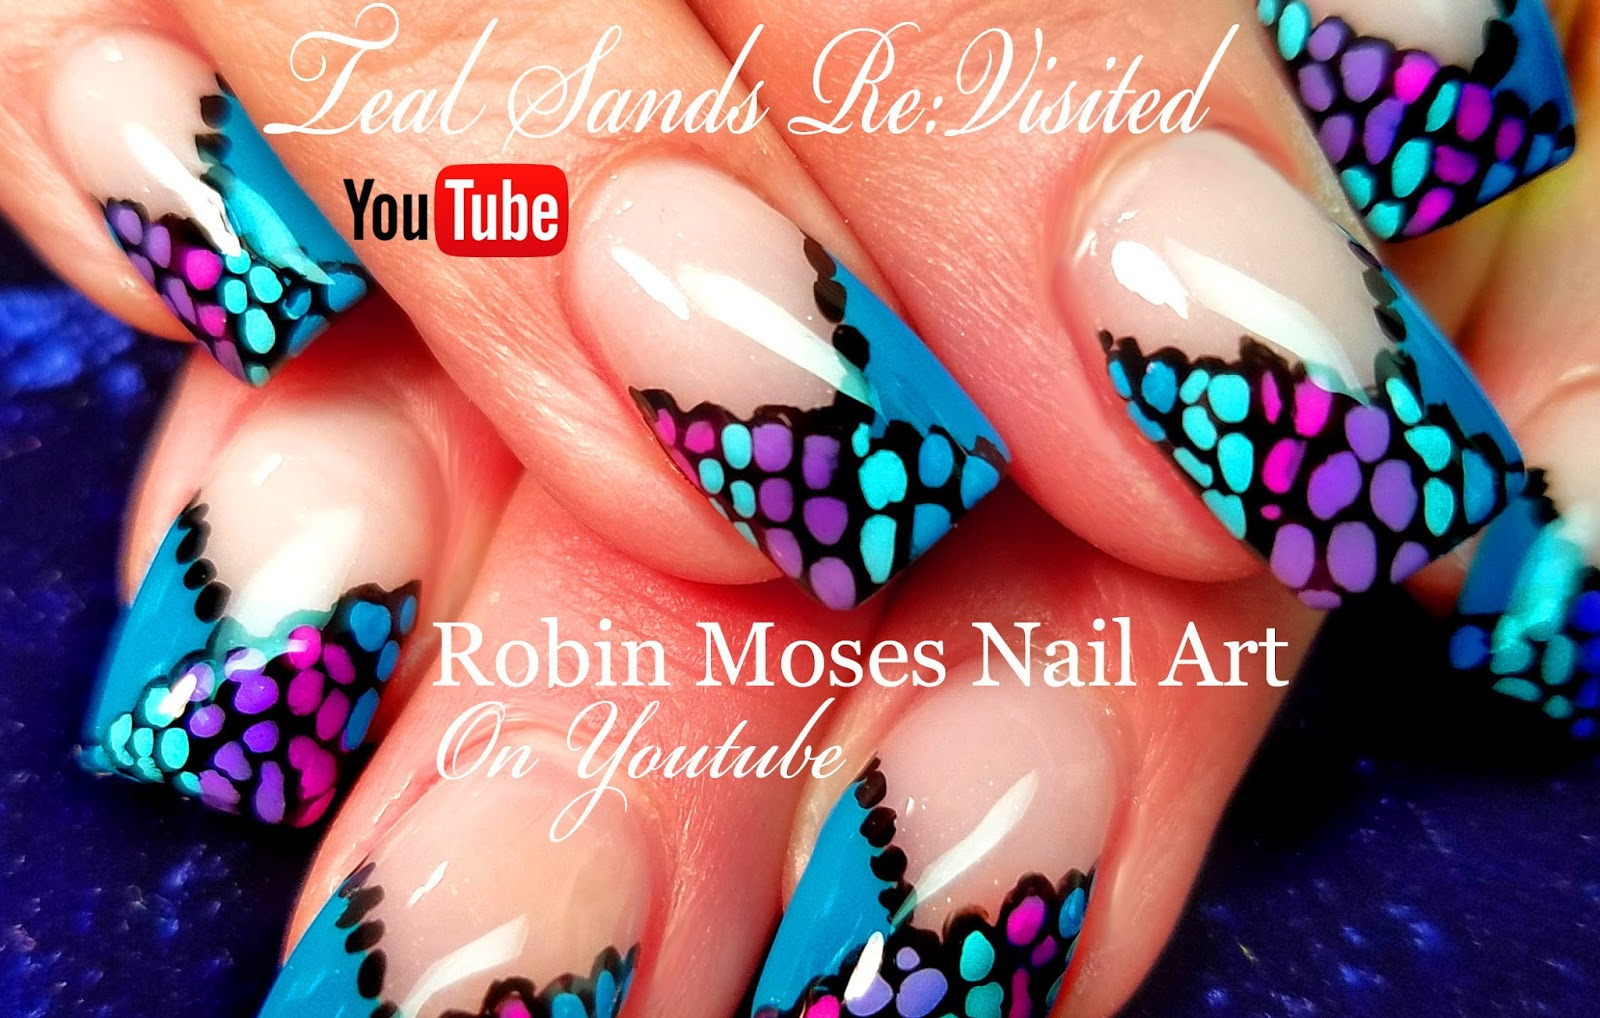 Robin moses nail art easy diy dot french mani teal sands easy diy dot french mani teal sands dotticure nail art design tutorial prinsesfo Image collections